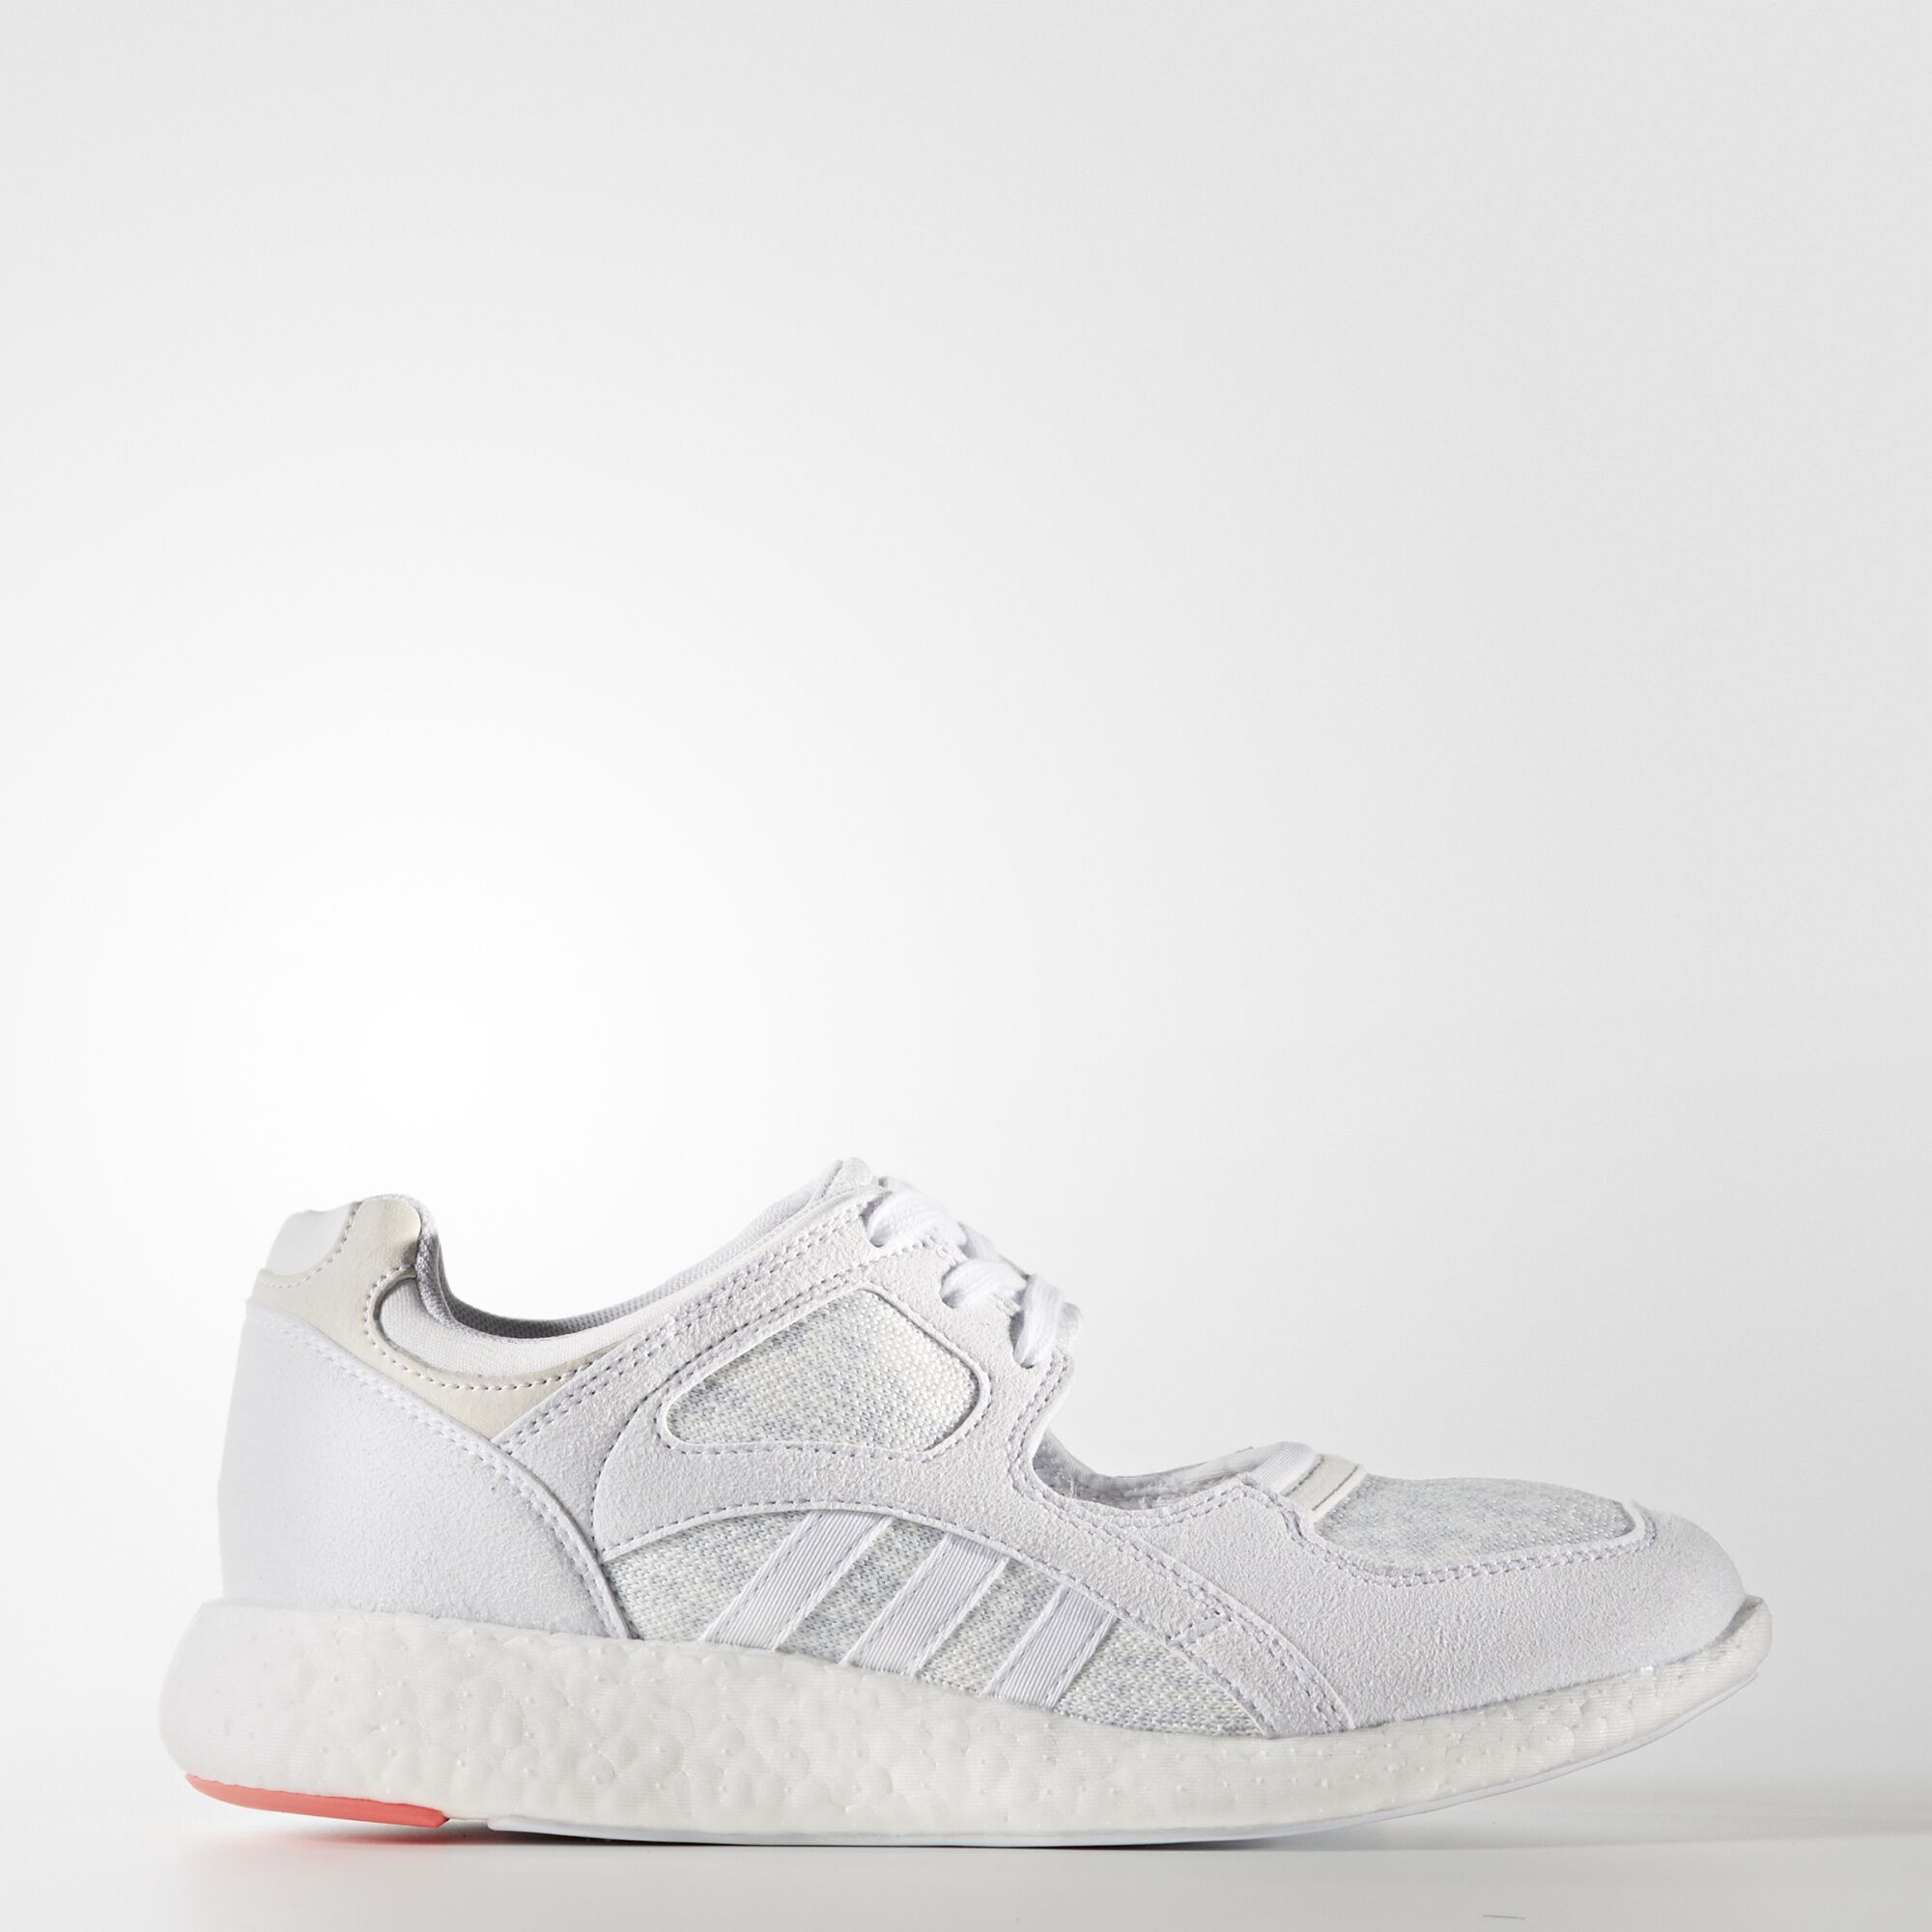 adidas EQT Support ADV Primeknit Shoes White adidas Ireland